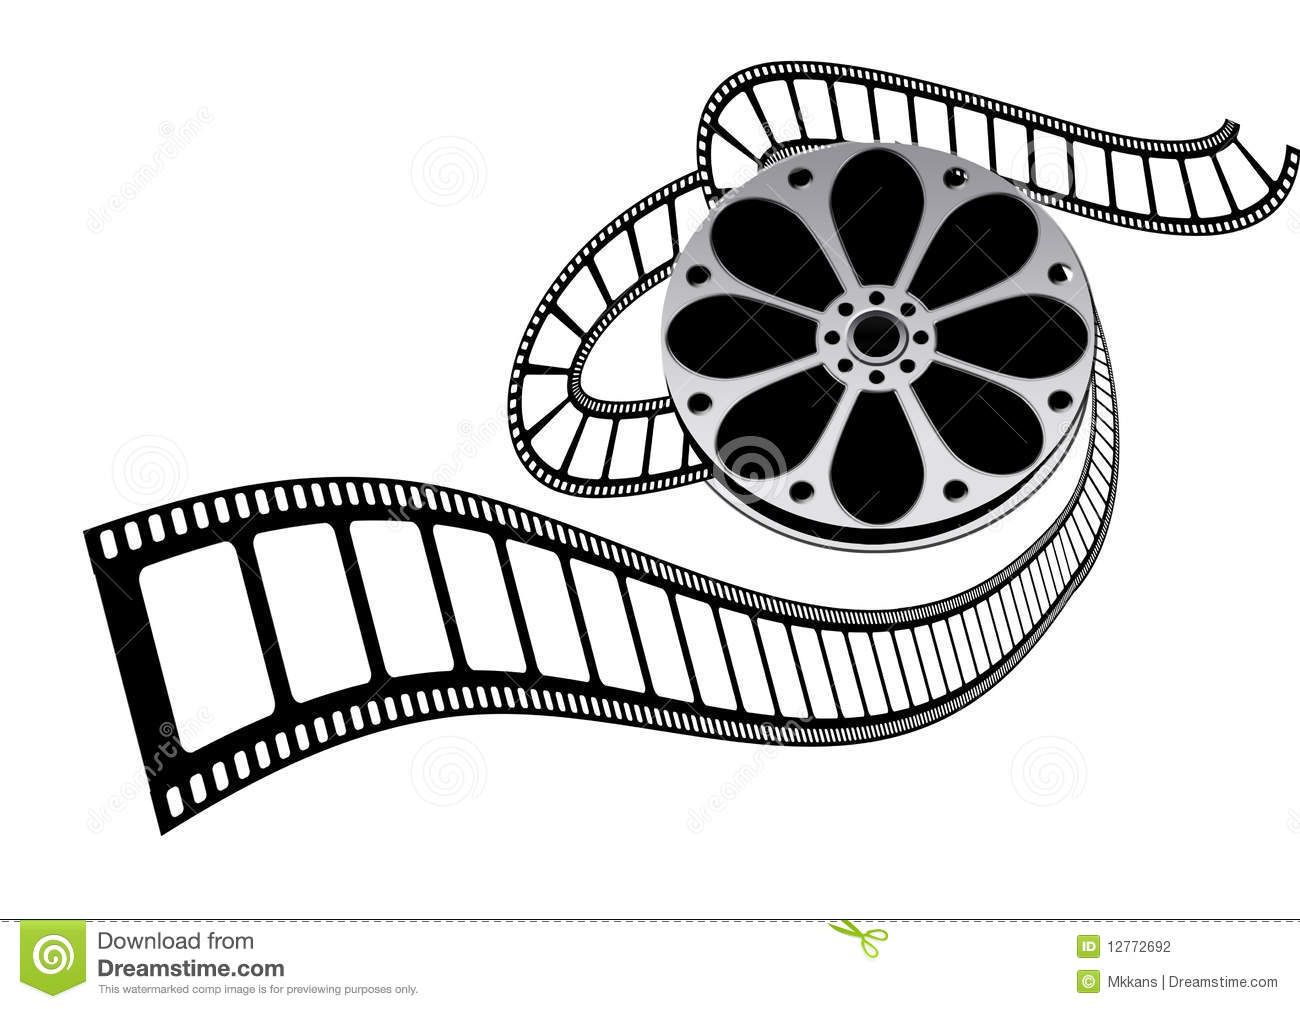 Movie roll clipart image library download Movie clipart film roll #7 | 252 BASICS FEB 18 REWIND-BE ... image library download